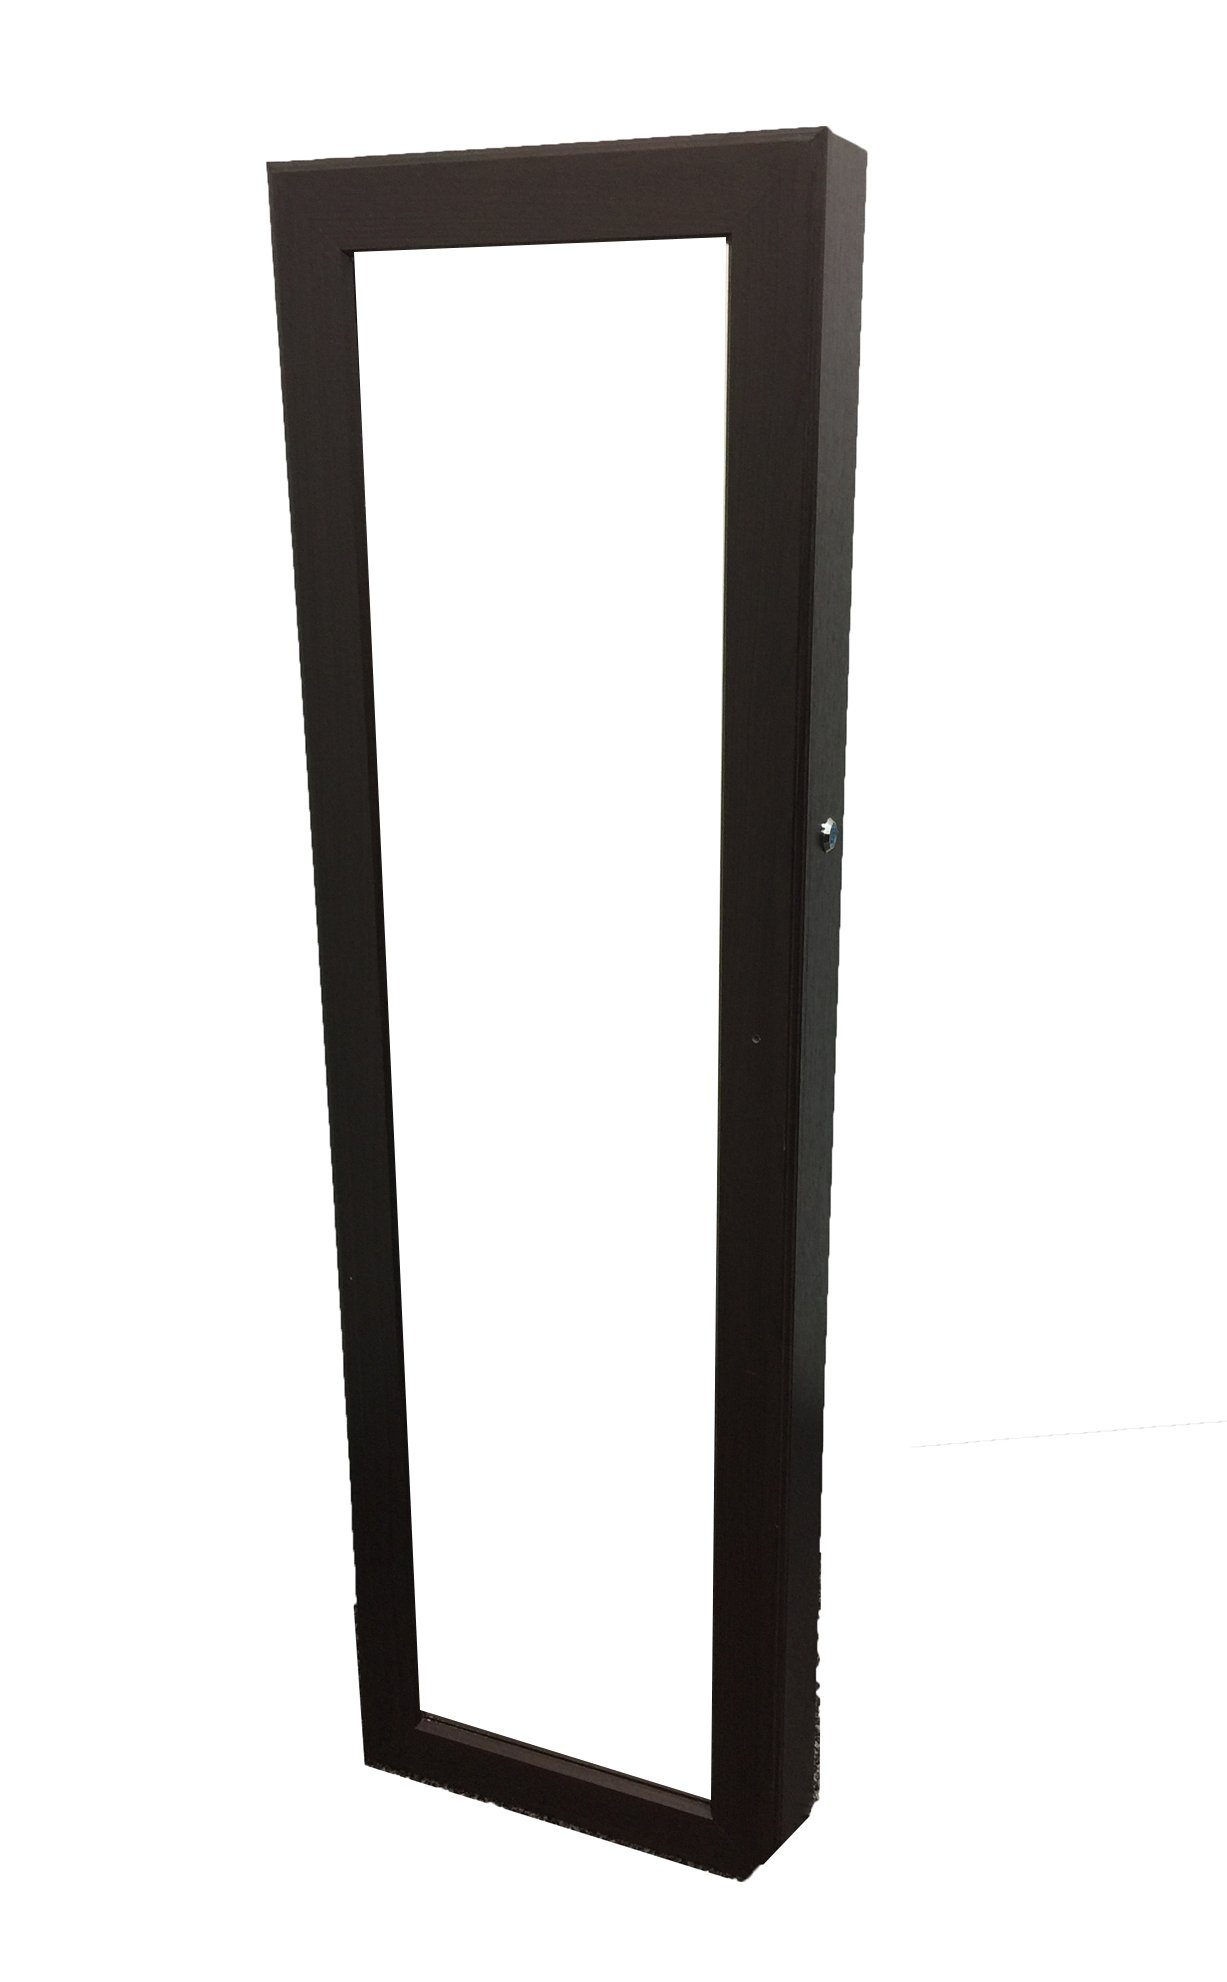 Locking Jewelry Armoire with Mirror - Wall Mount or Hanging Over the Door by Perfect Life Ideas - COLOR: Dark Espresso Brown